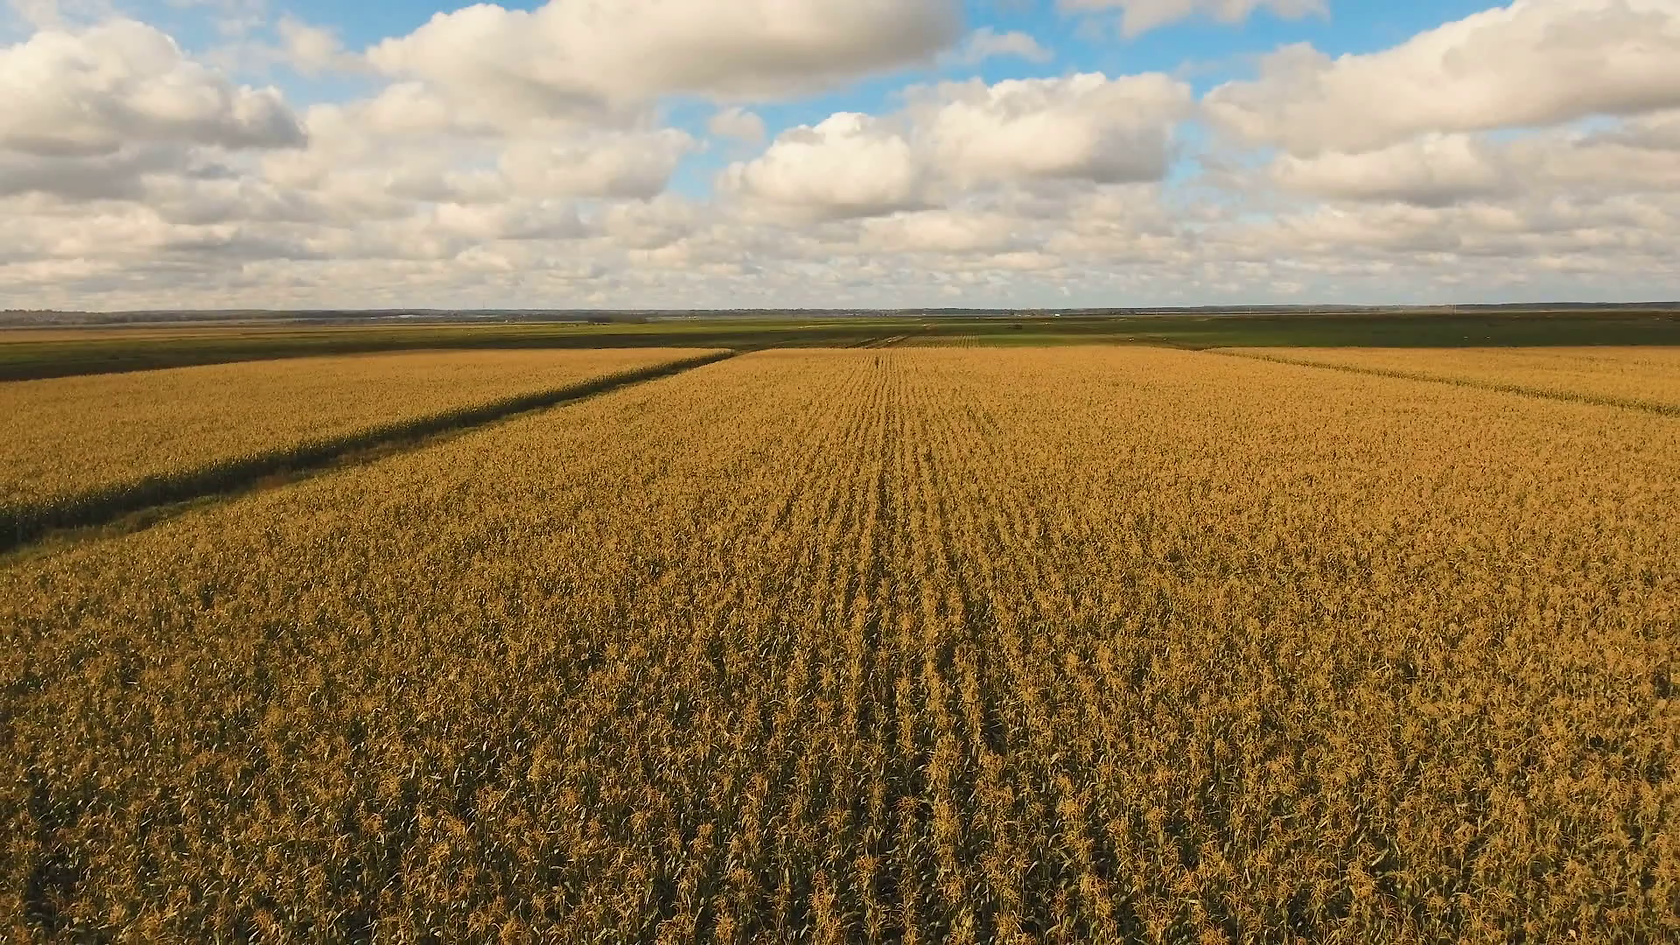 aerial-view-of-a-farm-field-with-rows-of